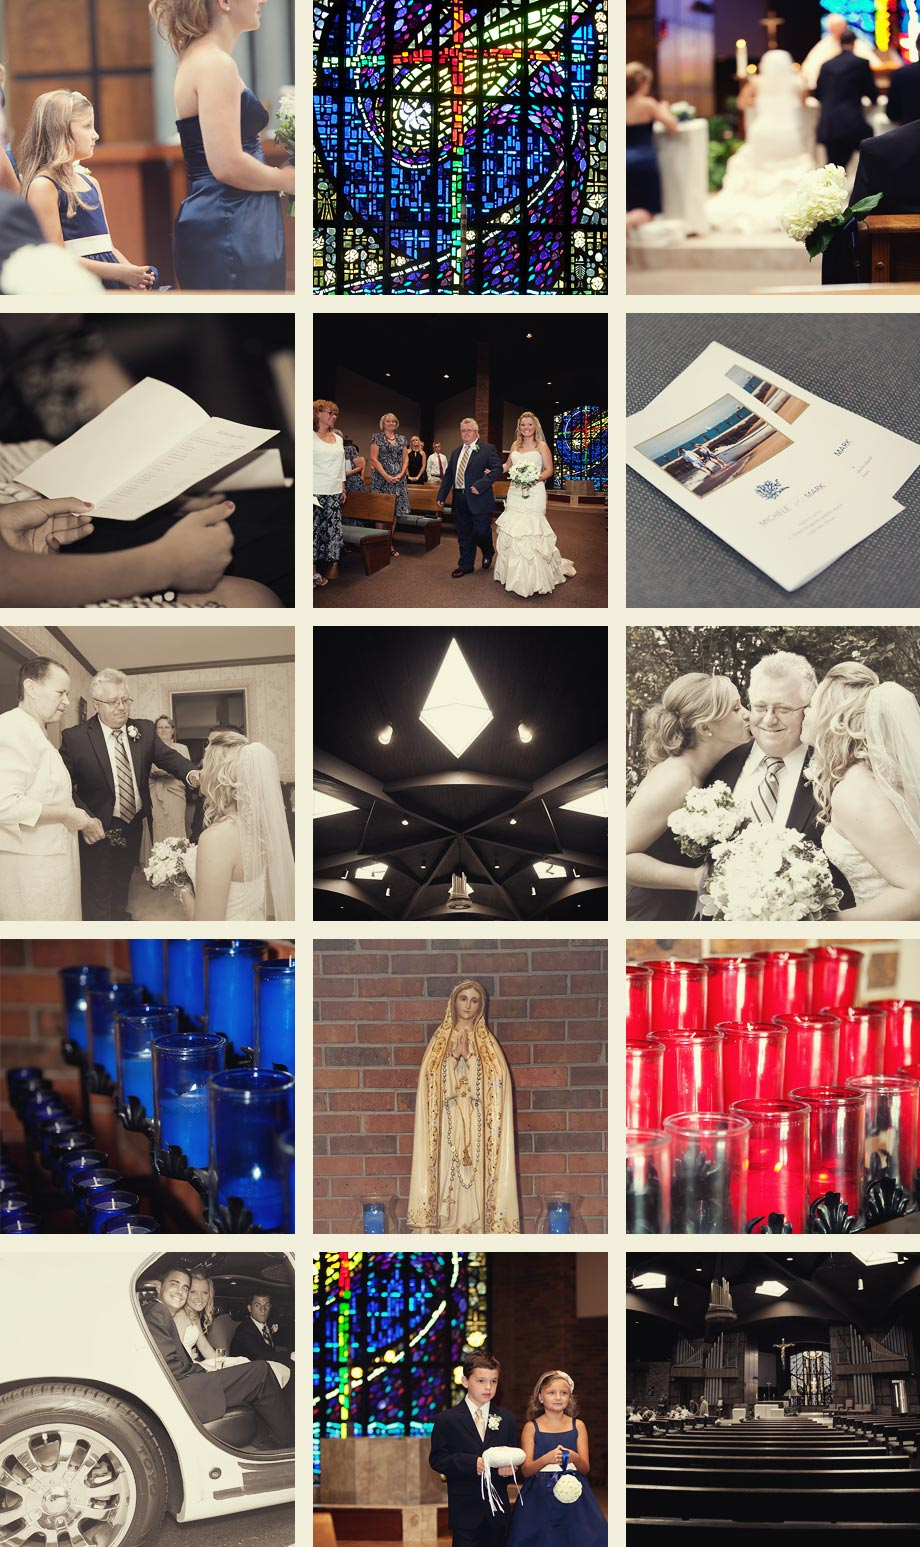 chicago wedding ceremony photographs